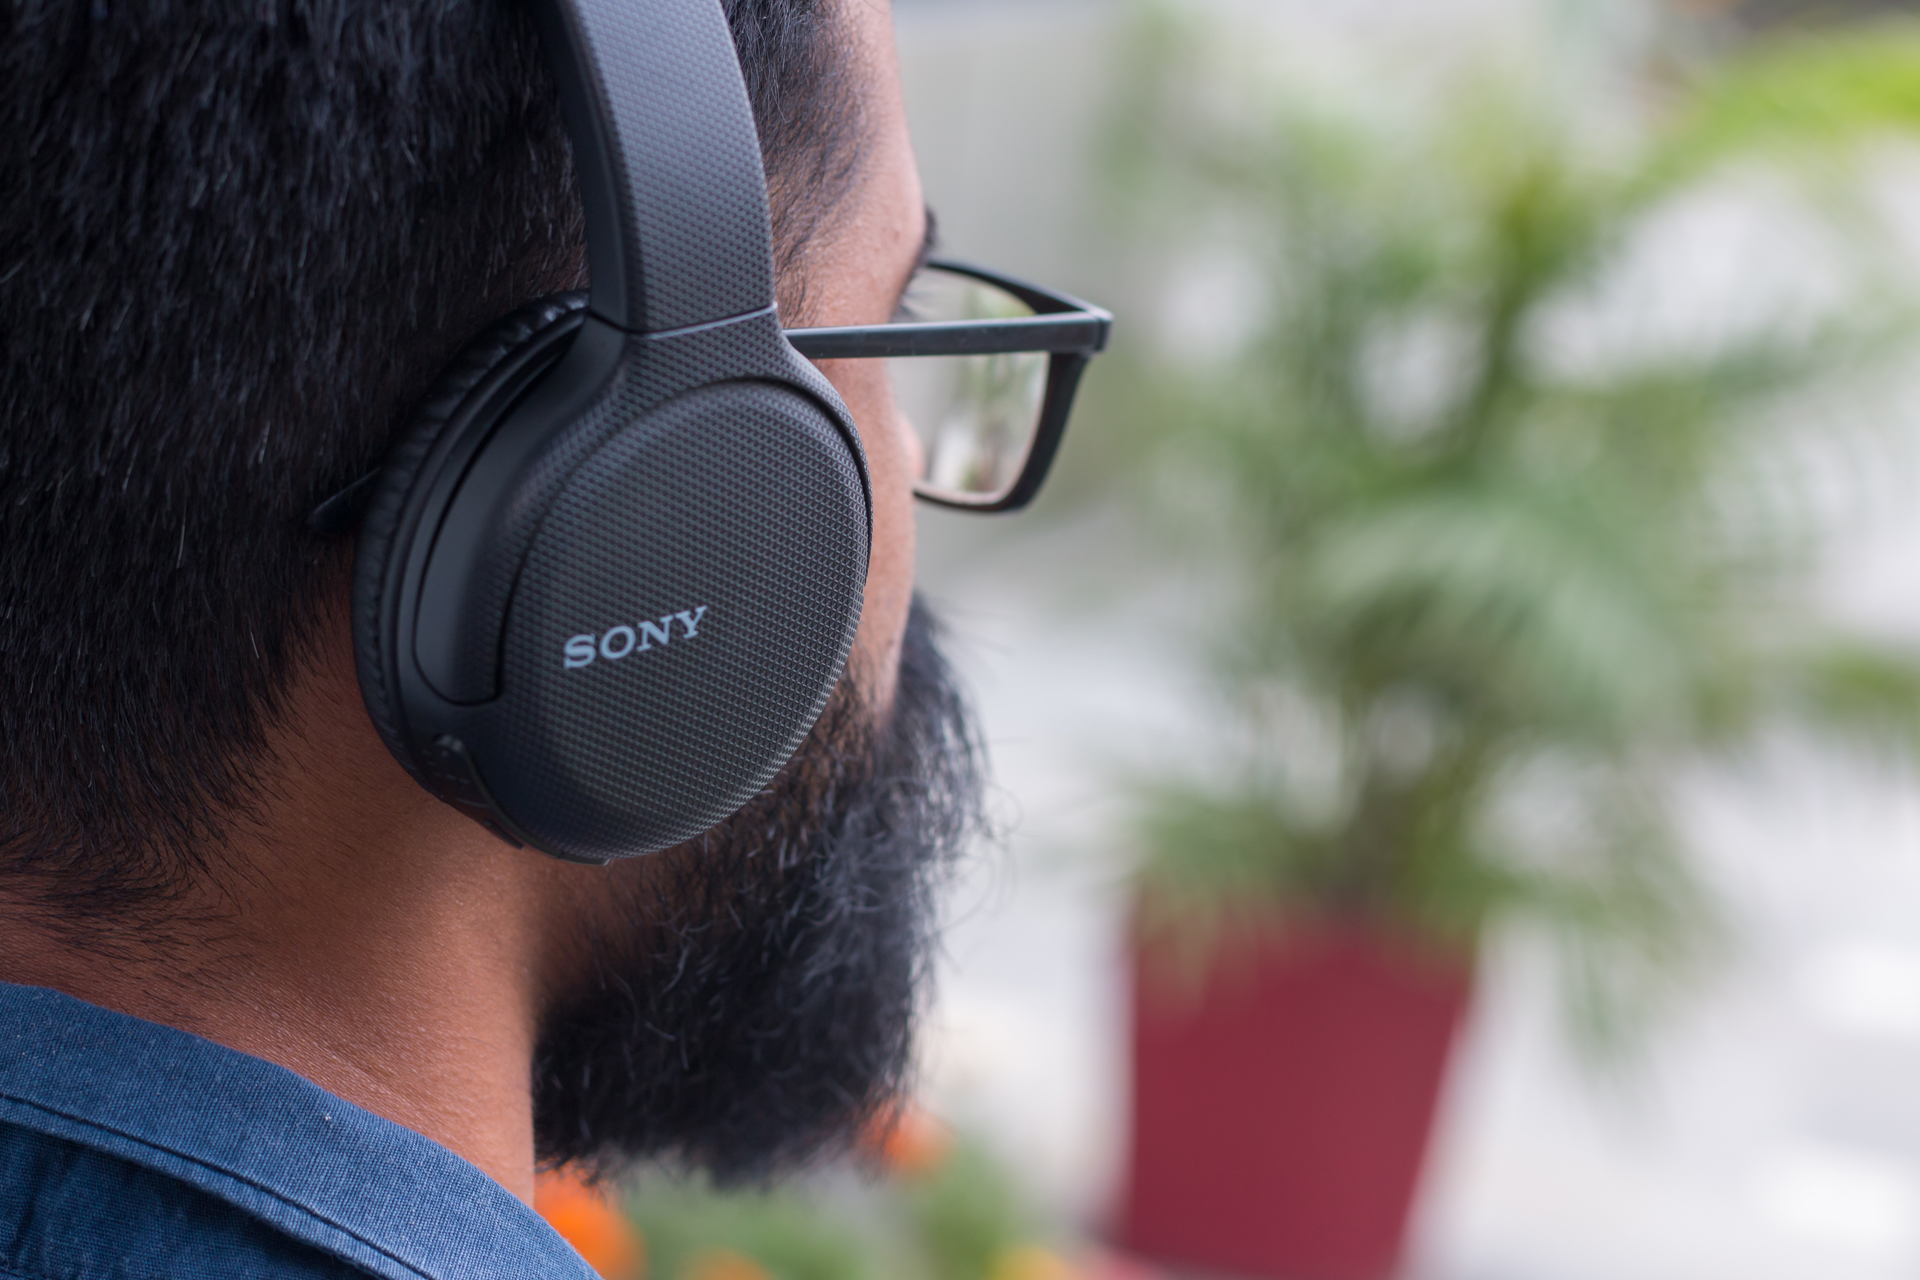 Sony WH-CH510 Headphones Review - Smartprix Bytes